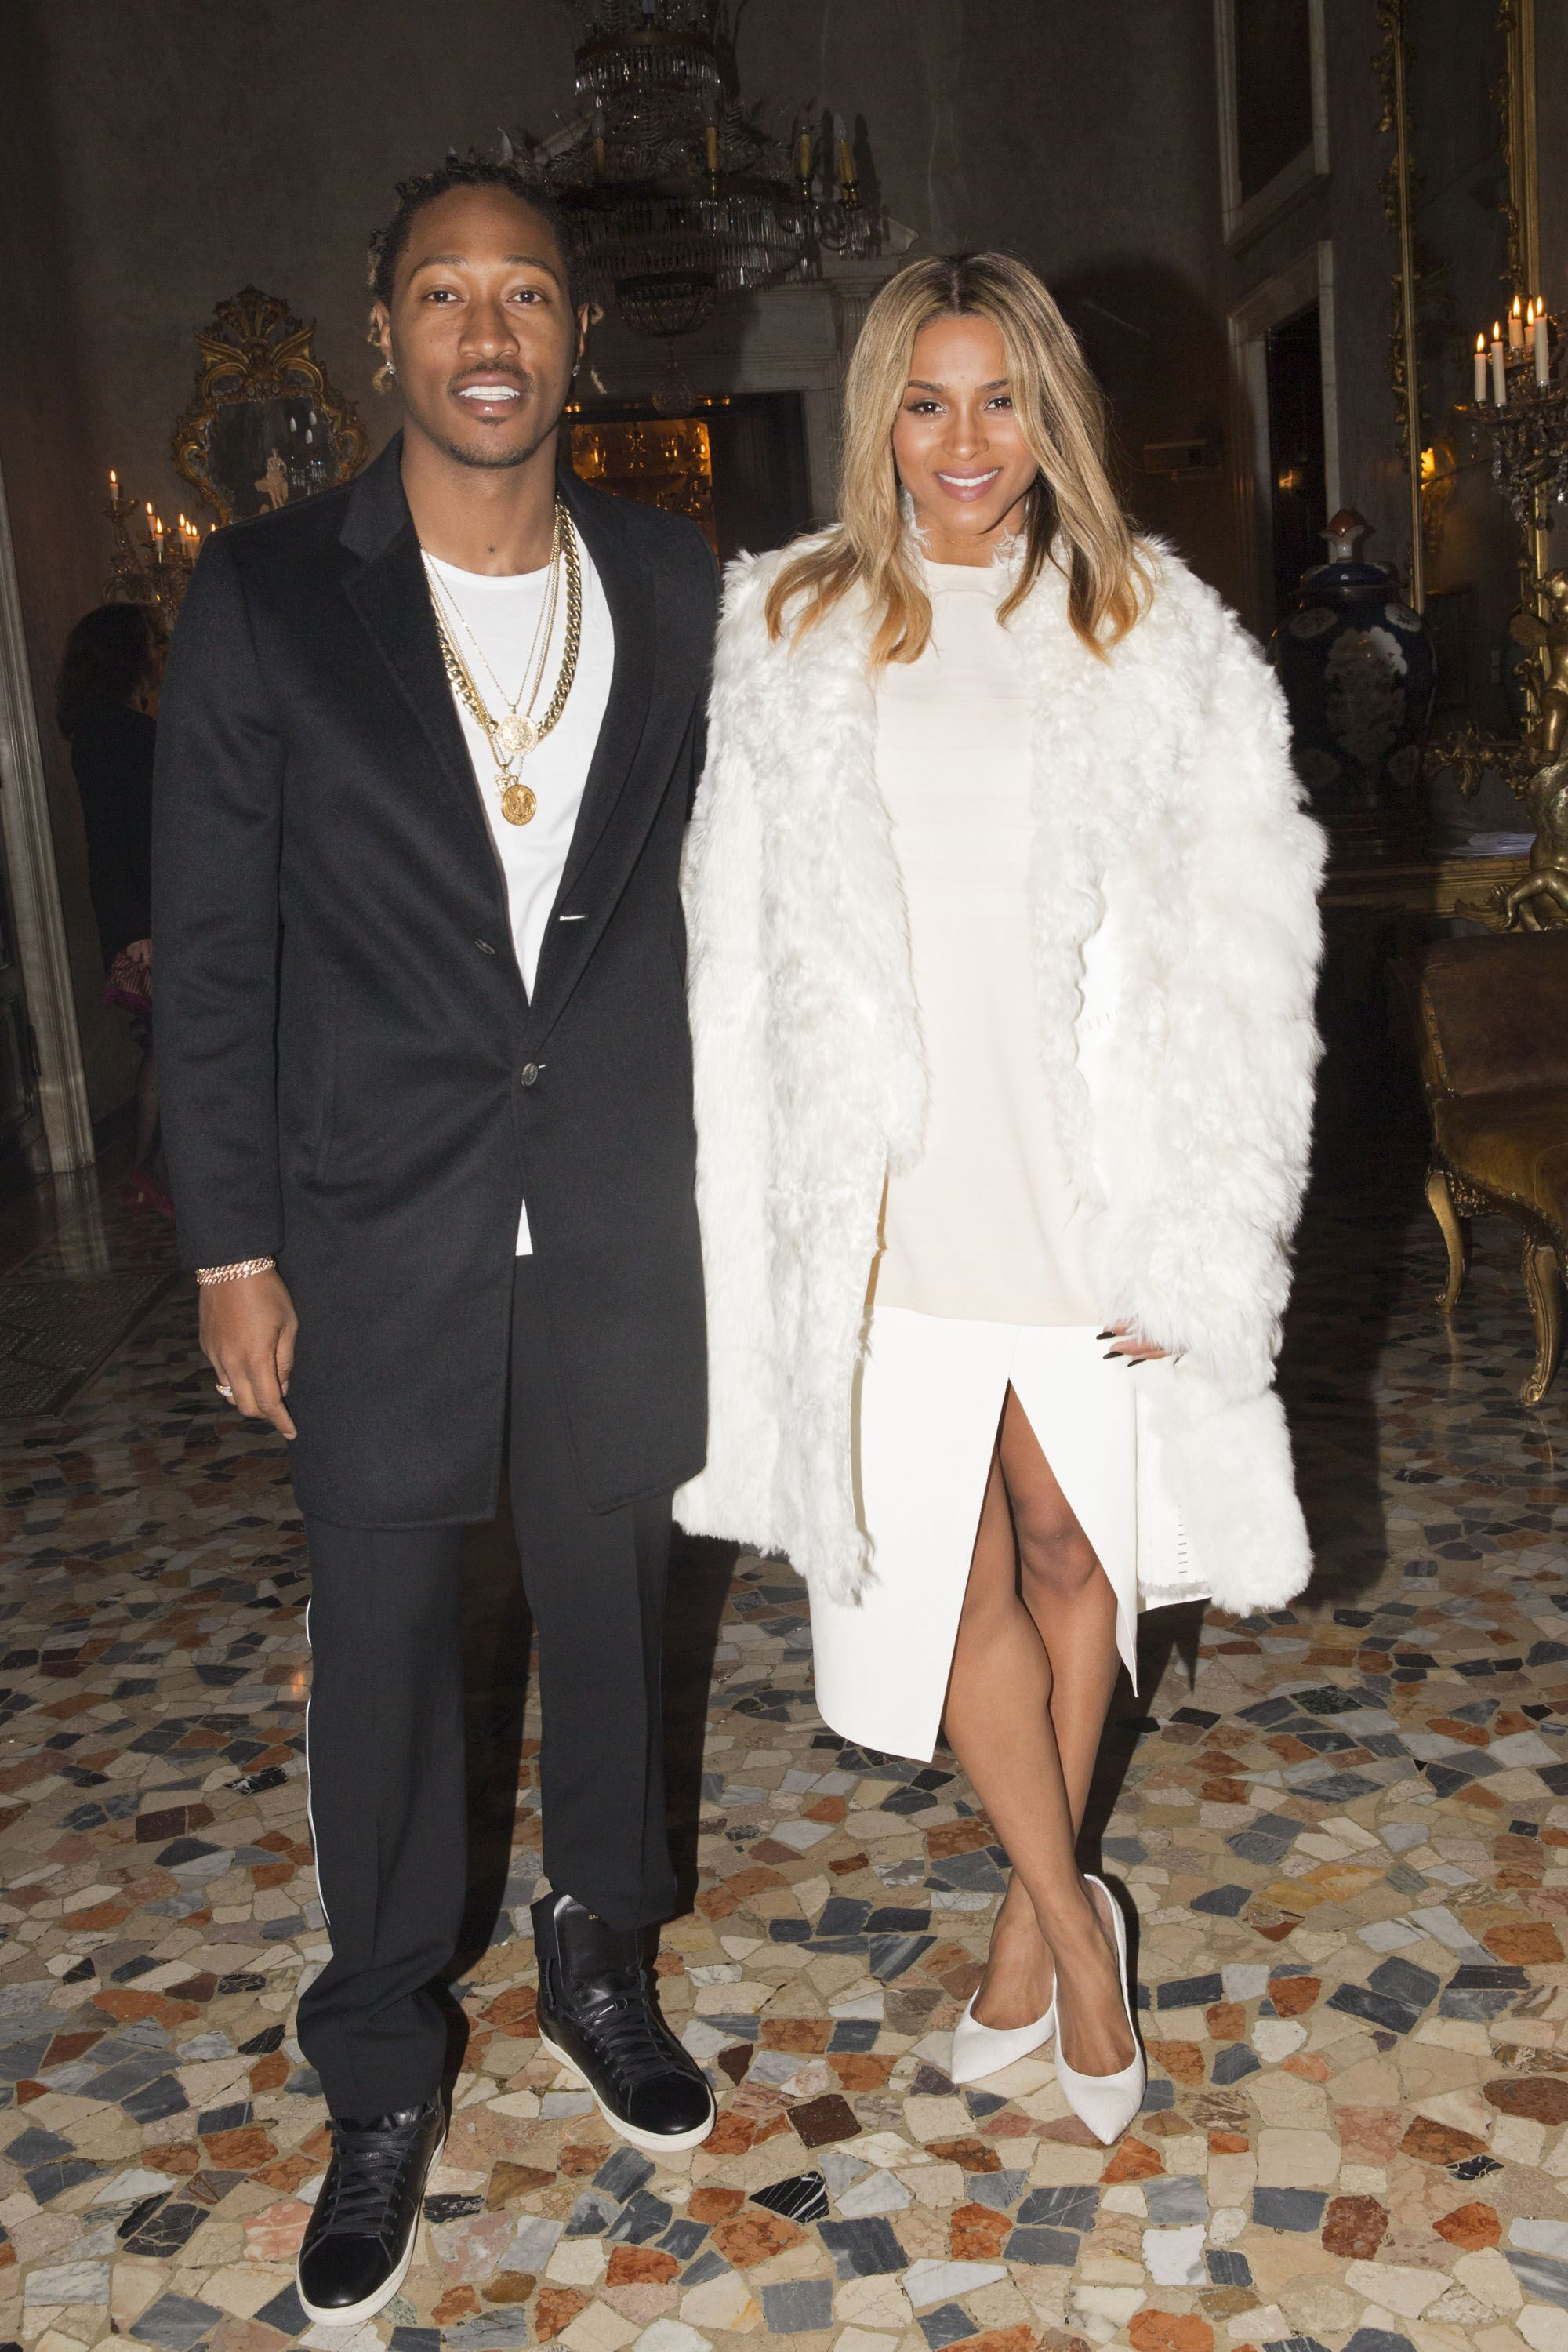 Future and Ciara attend the Calvin Klein Collection after party as a part of Milan Fashion Week Menswear Autumn/Winter 2014 at Palazzo Crespi on January 12, 2014 in Milan, Italy. | Source: Getty Images